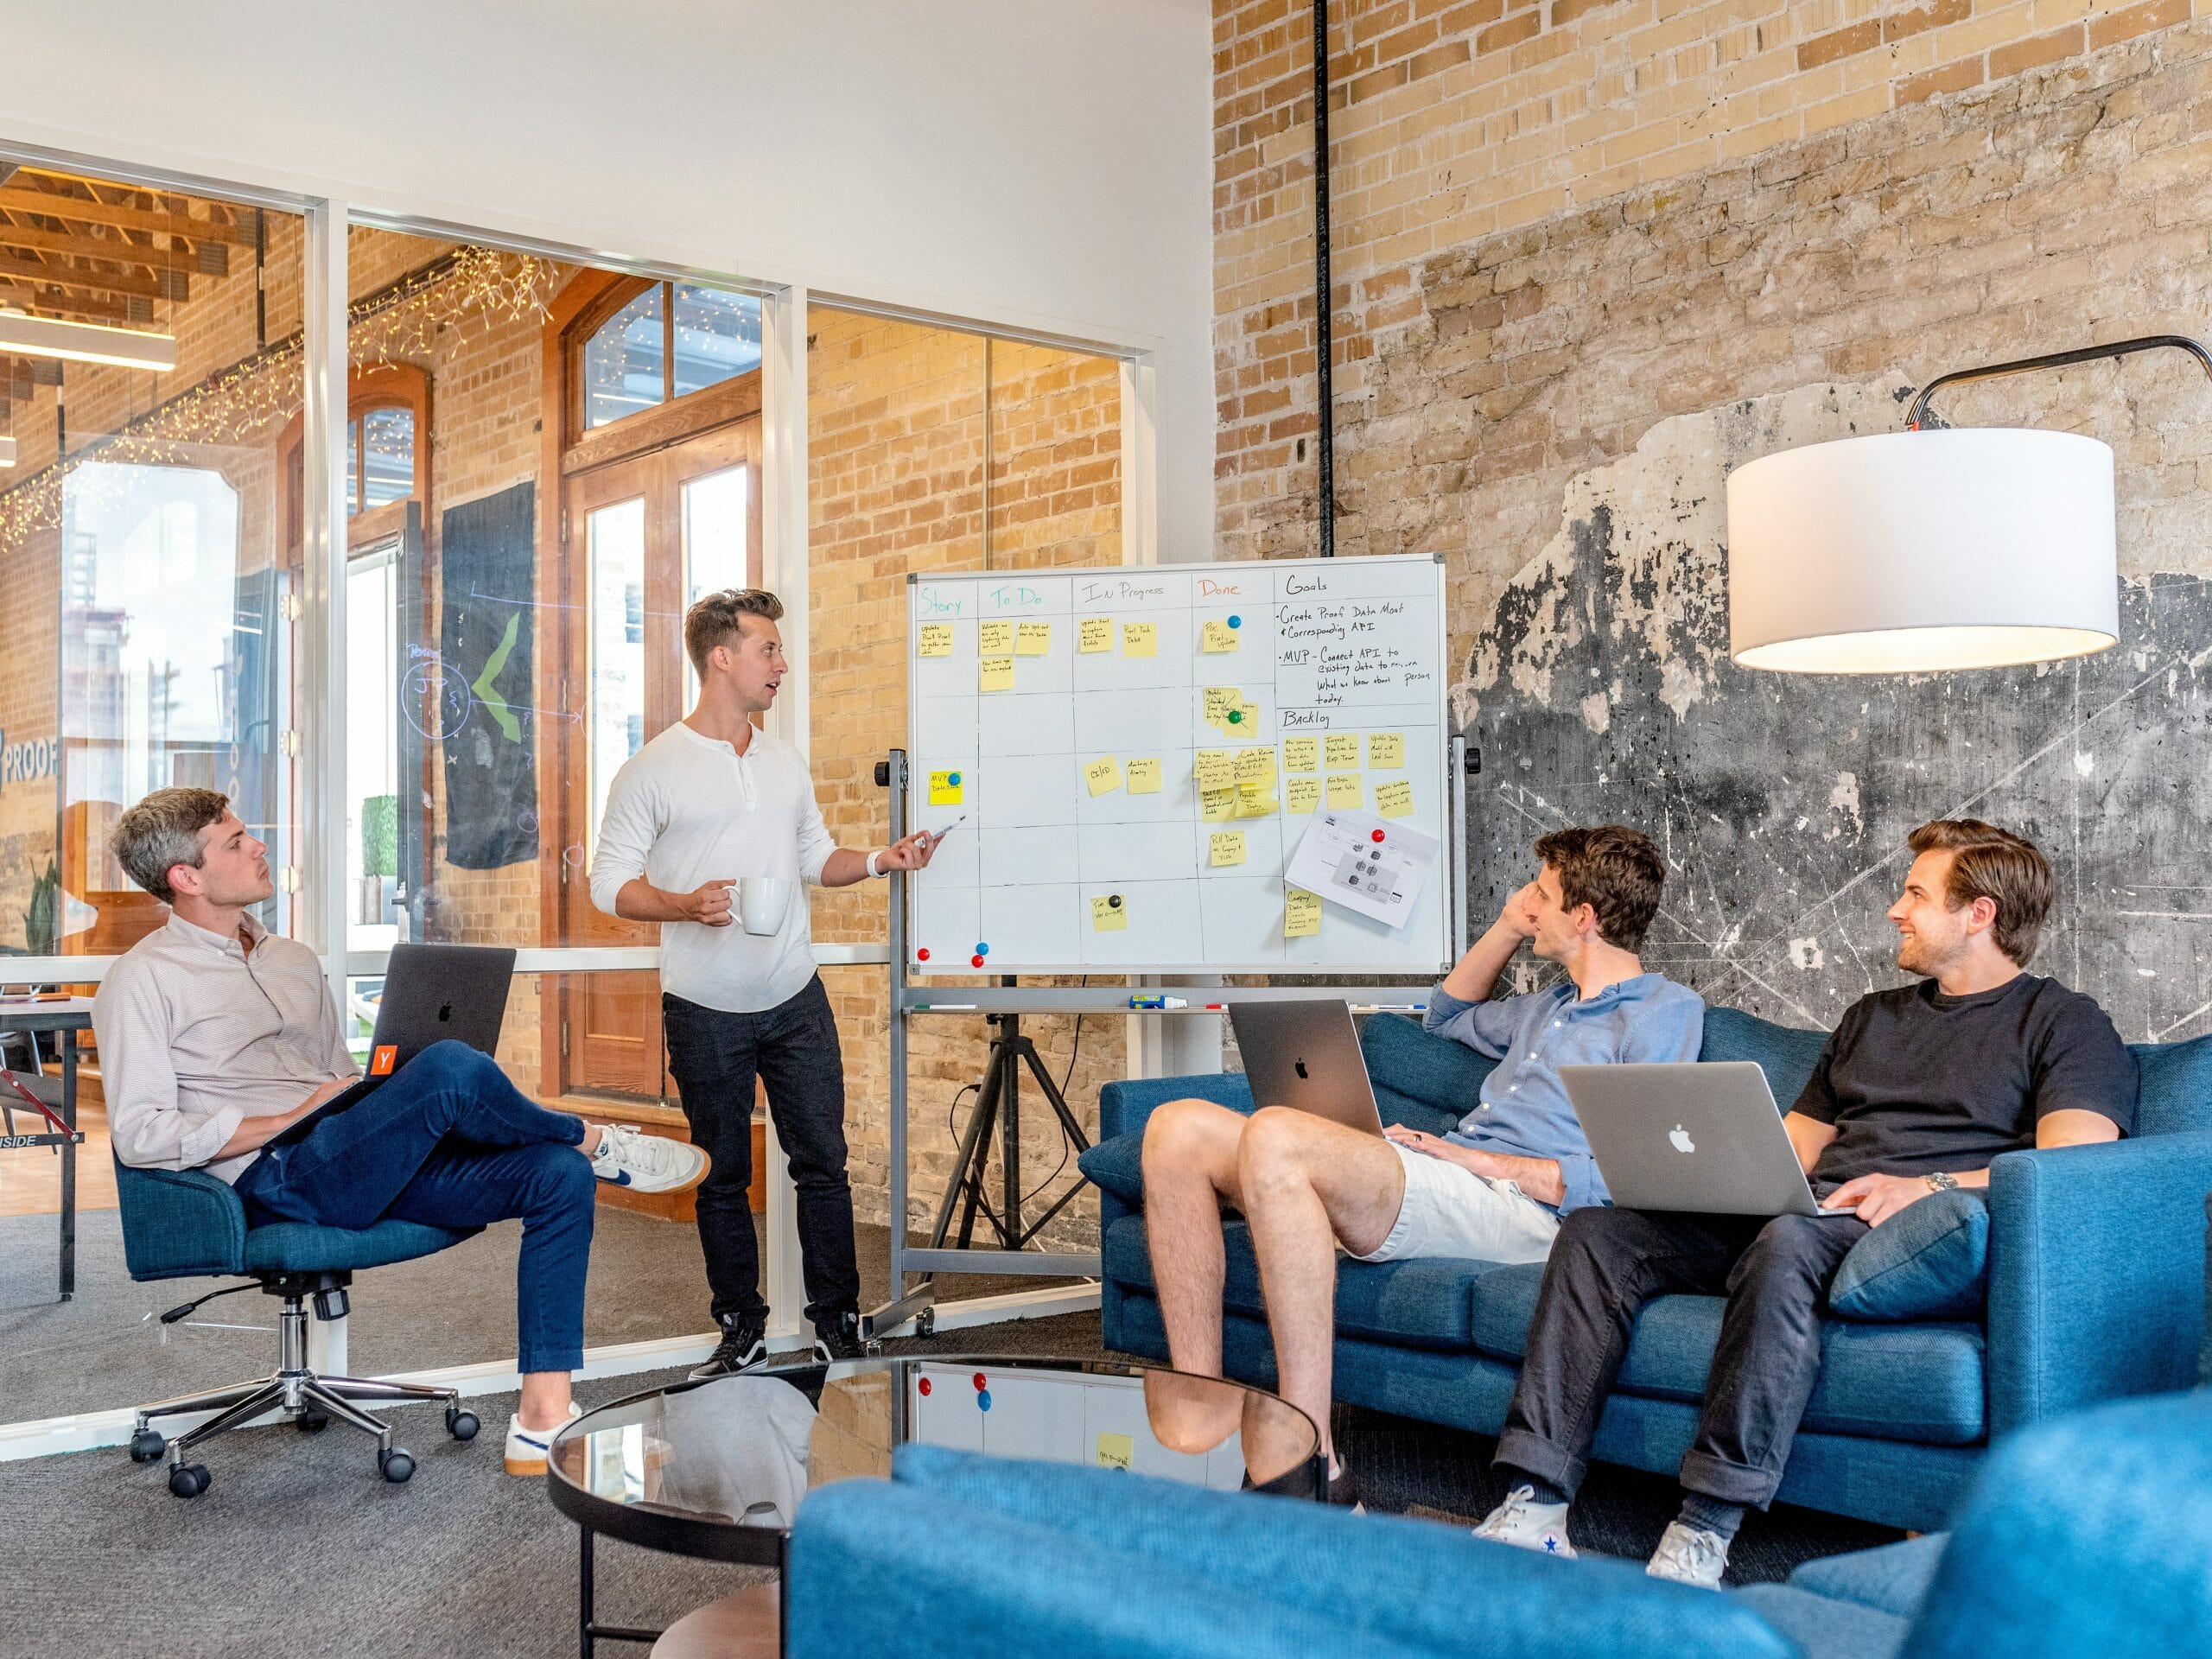 Agency vs In-house Design: Pros, Cons, and an Alternative for Your Design Work - DY Blog